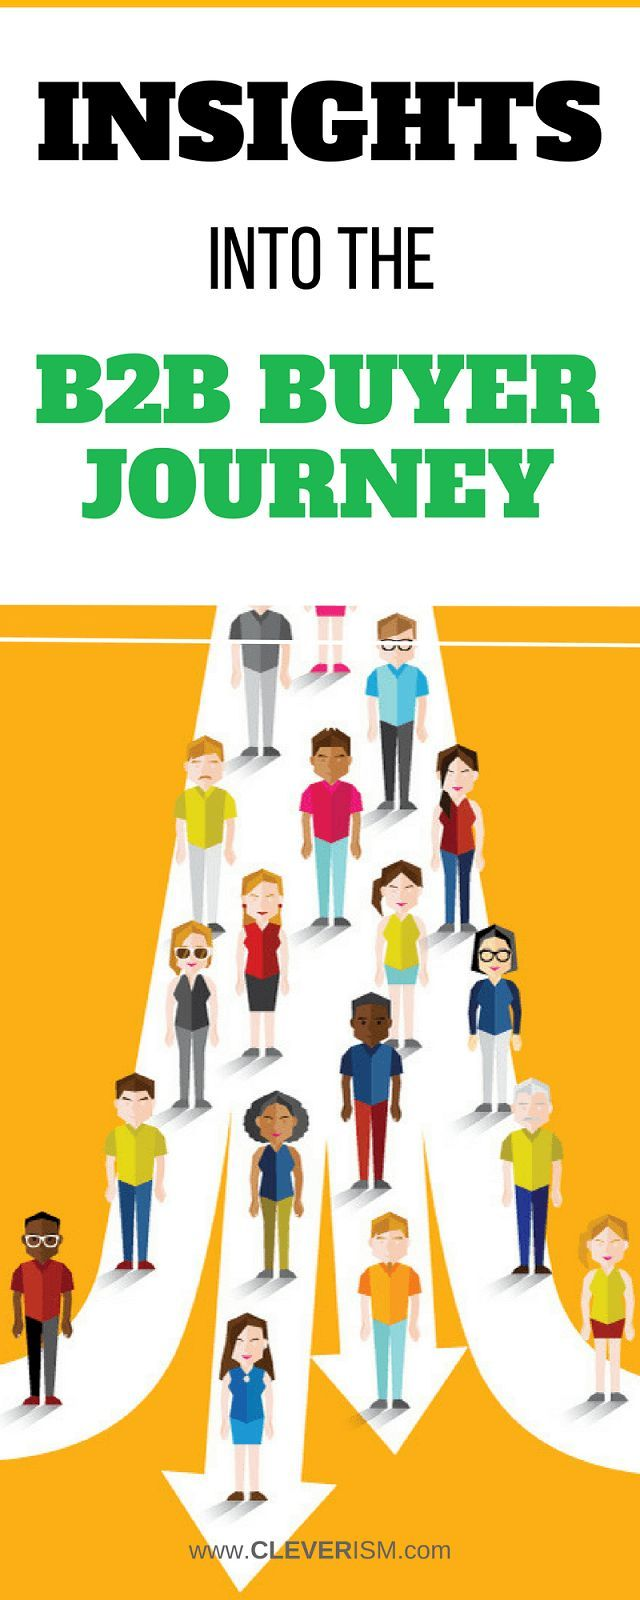 Insights into The B2B Buyer Journey